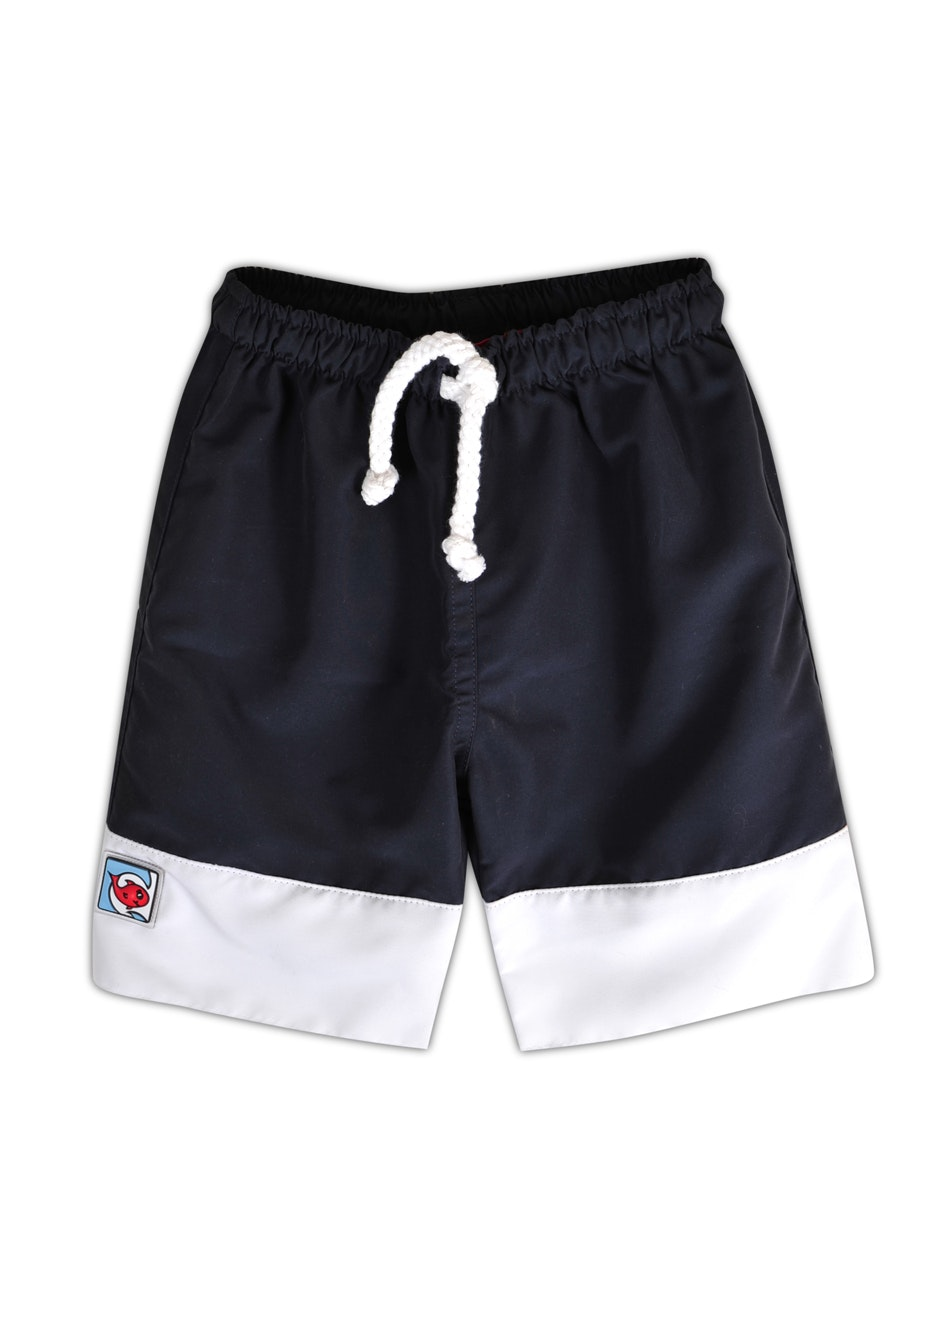 Little Red Fish - Boardshorts with White Band - Navy Seal